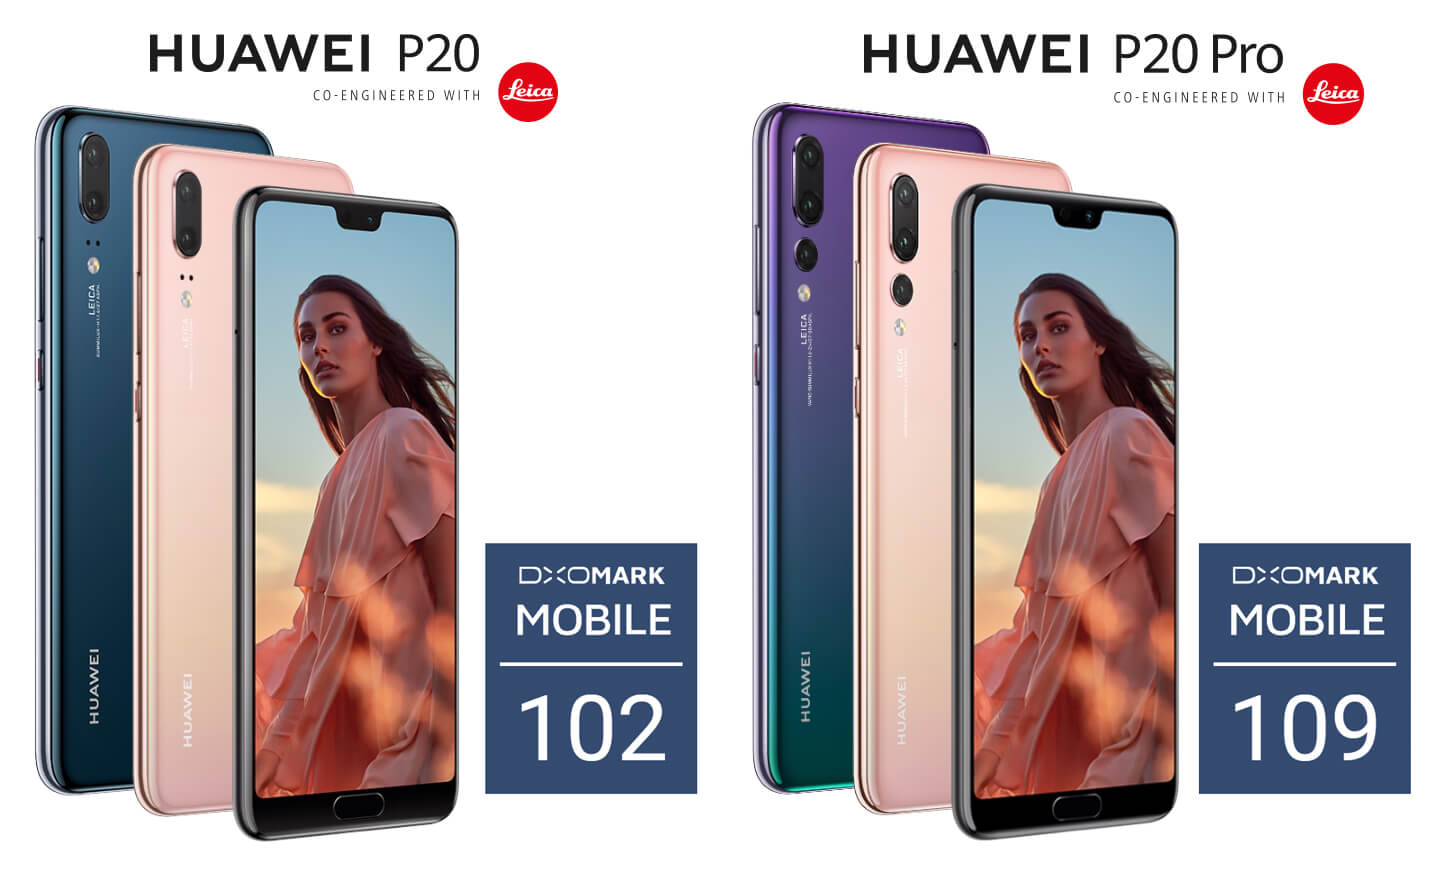 Huawei P20 Pro has the world's best smartphone camera, DxO marking